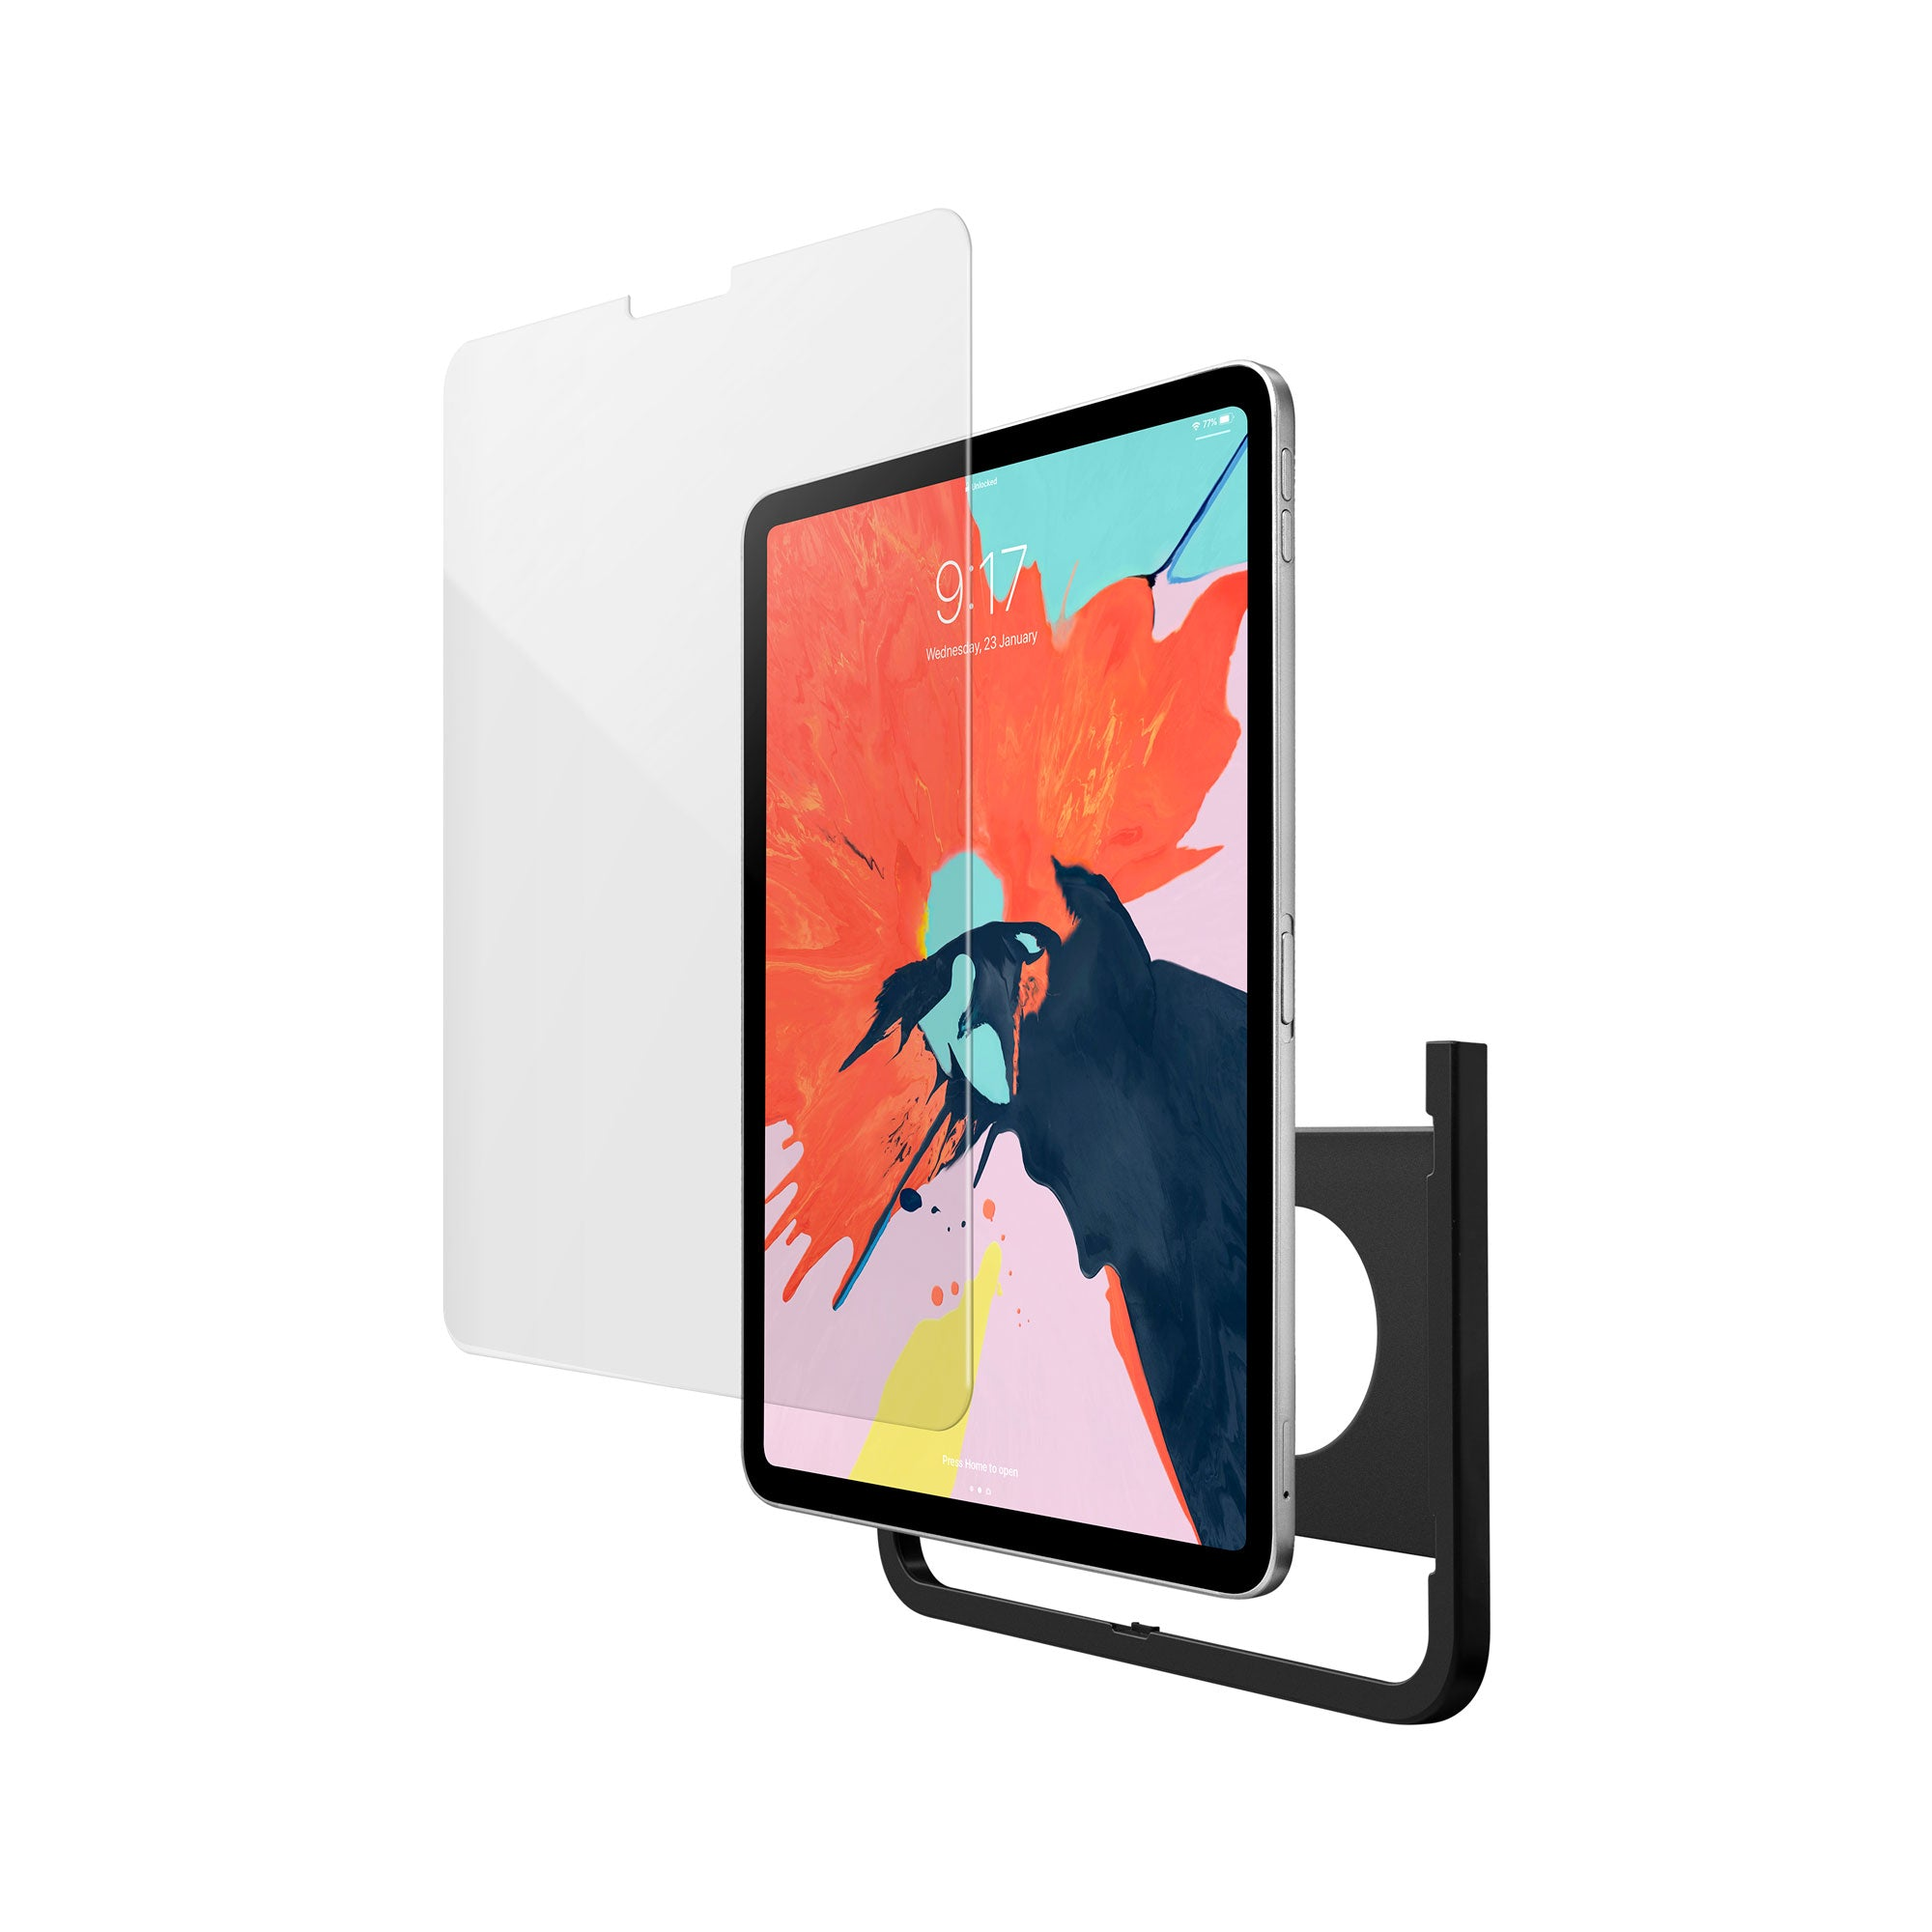 PRIME Glass for iPad Pro 11-inch (Late 2018)